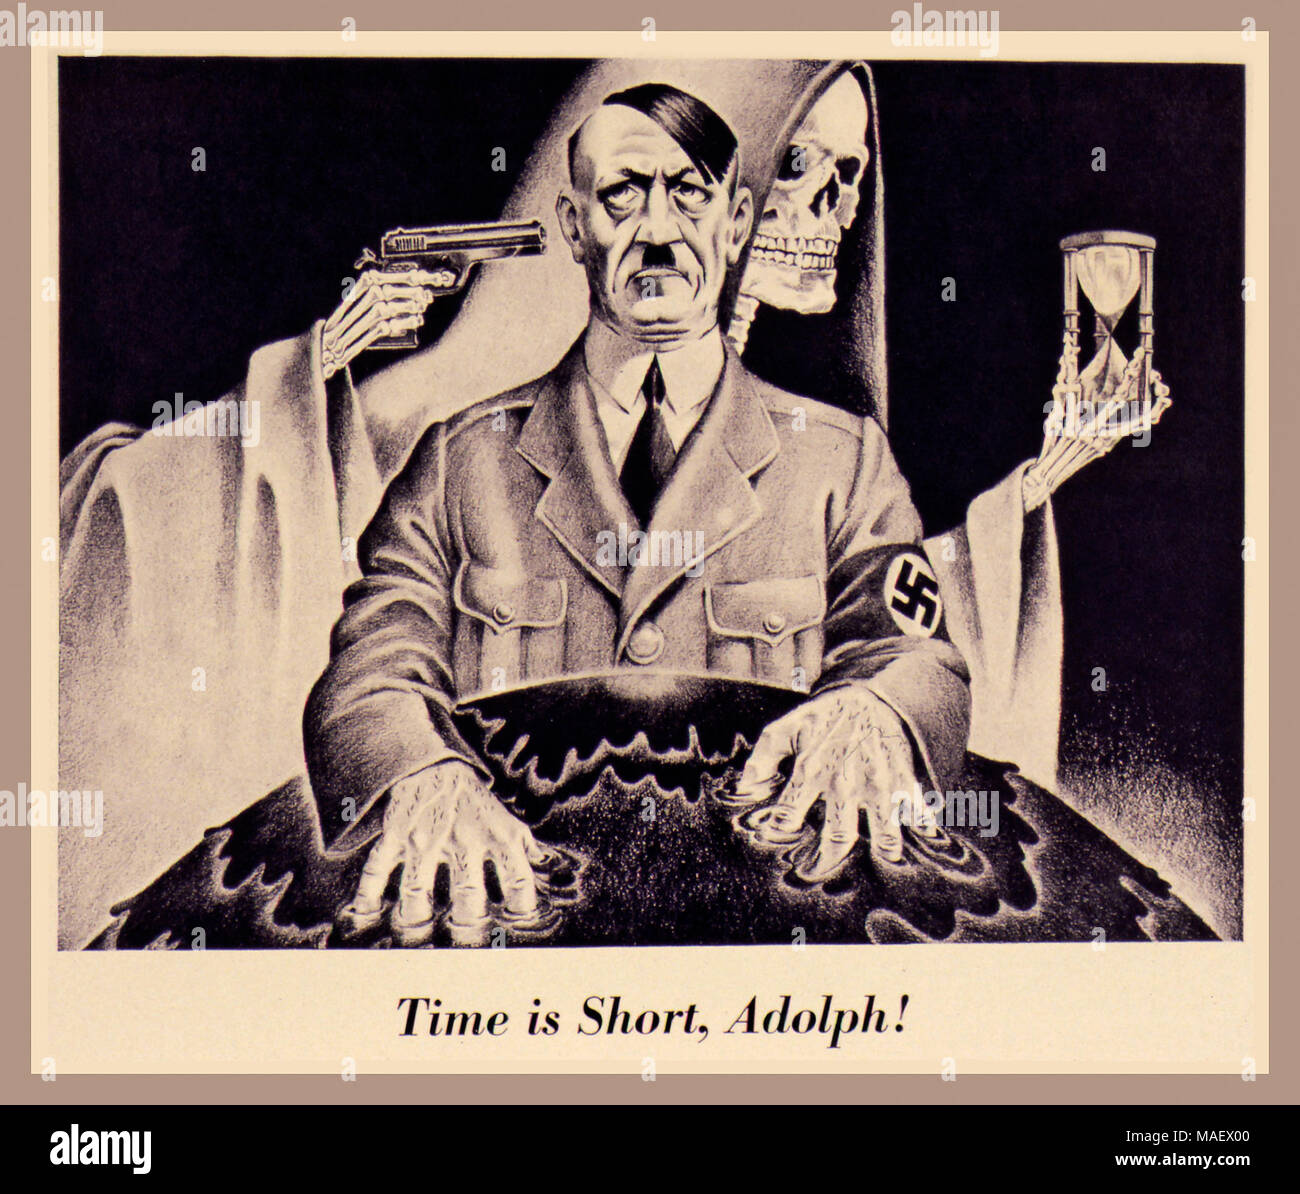 """Vintage British Allied Propaganda WW2 Propaganda poster of Adolf Hitler with the Grim Reaper waiting....""""Time is short, Adolph!""""  circa 1942-1943 - Stock Image"""